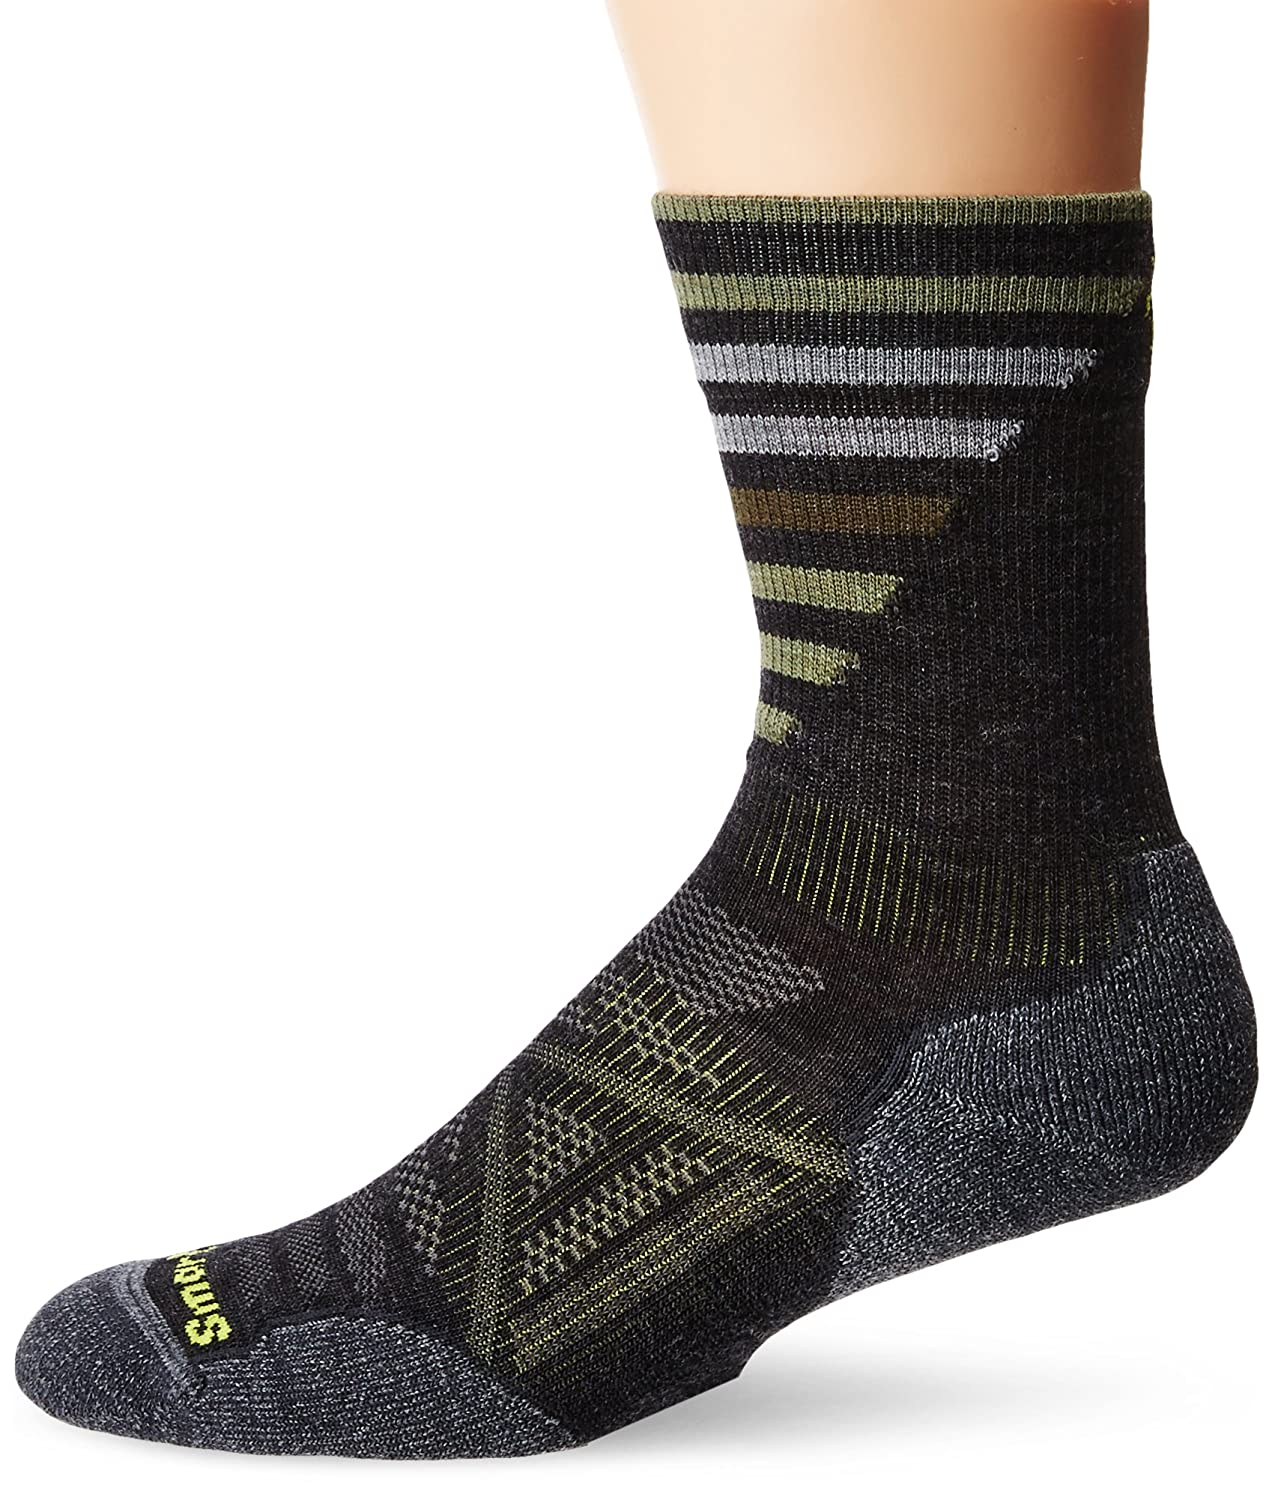 Smartwool Men's PhD Outdoor Light Pattern Crew Socks (Charcoal) Medium SW001208-003-M